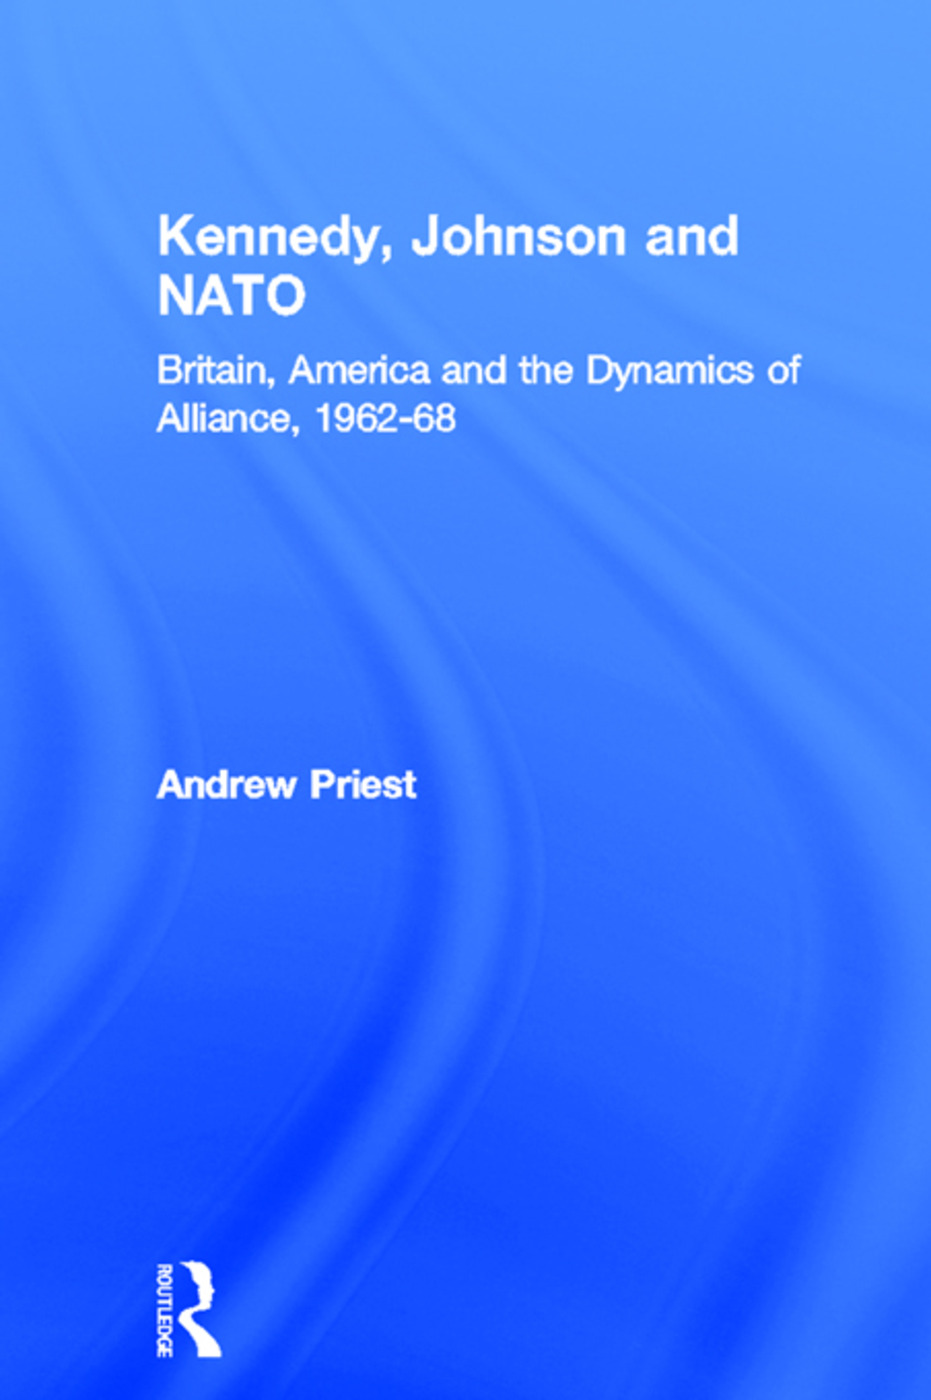 Kennedy, Johnson and NATO: Britain, America and the Dynamics of Alliance, 1962-68 book cover